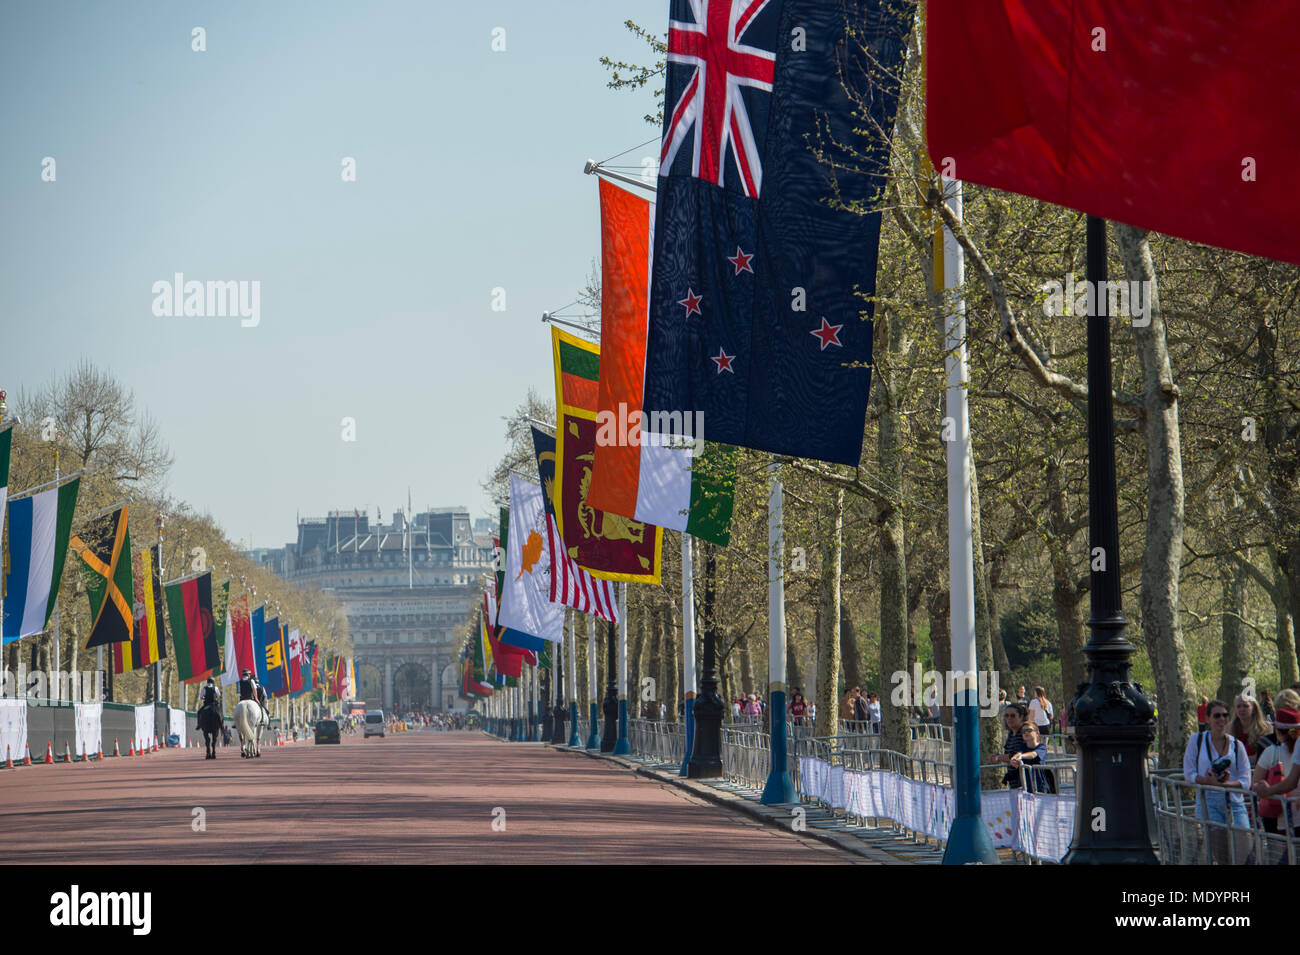 20 April 2018. Hot Spring weather in Green Park with Commonwealth flags lining The Mall for the Heads of Government summit, London, UK - Stock Image